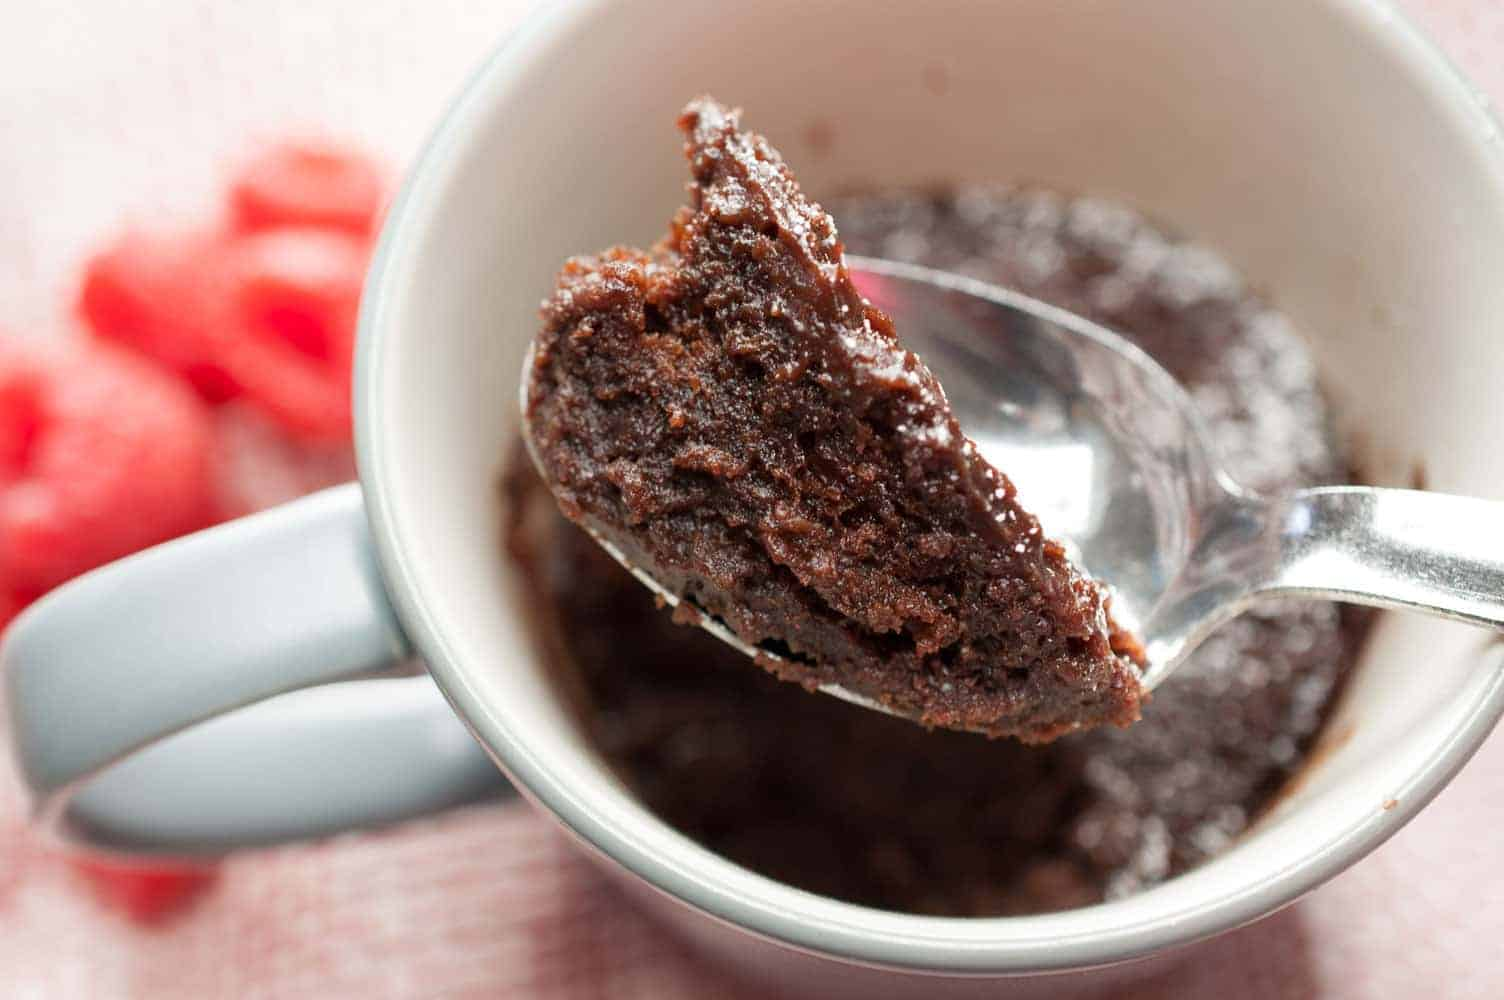 microwave eggless chocolate mug cake without butter